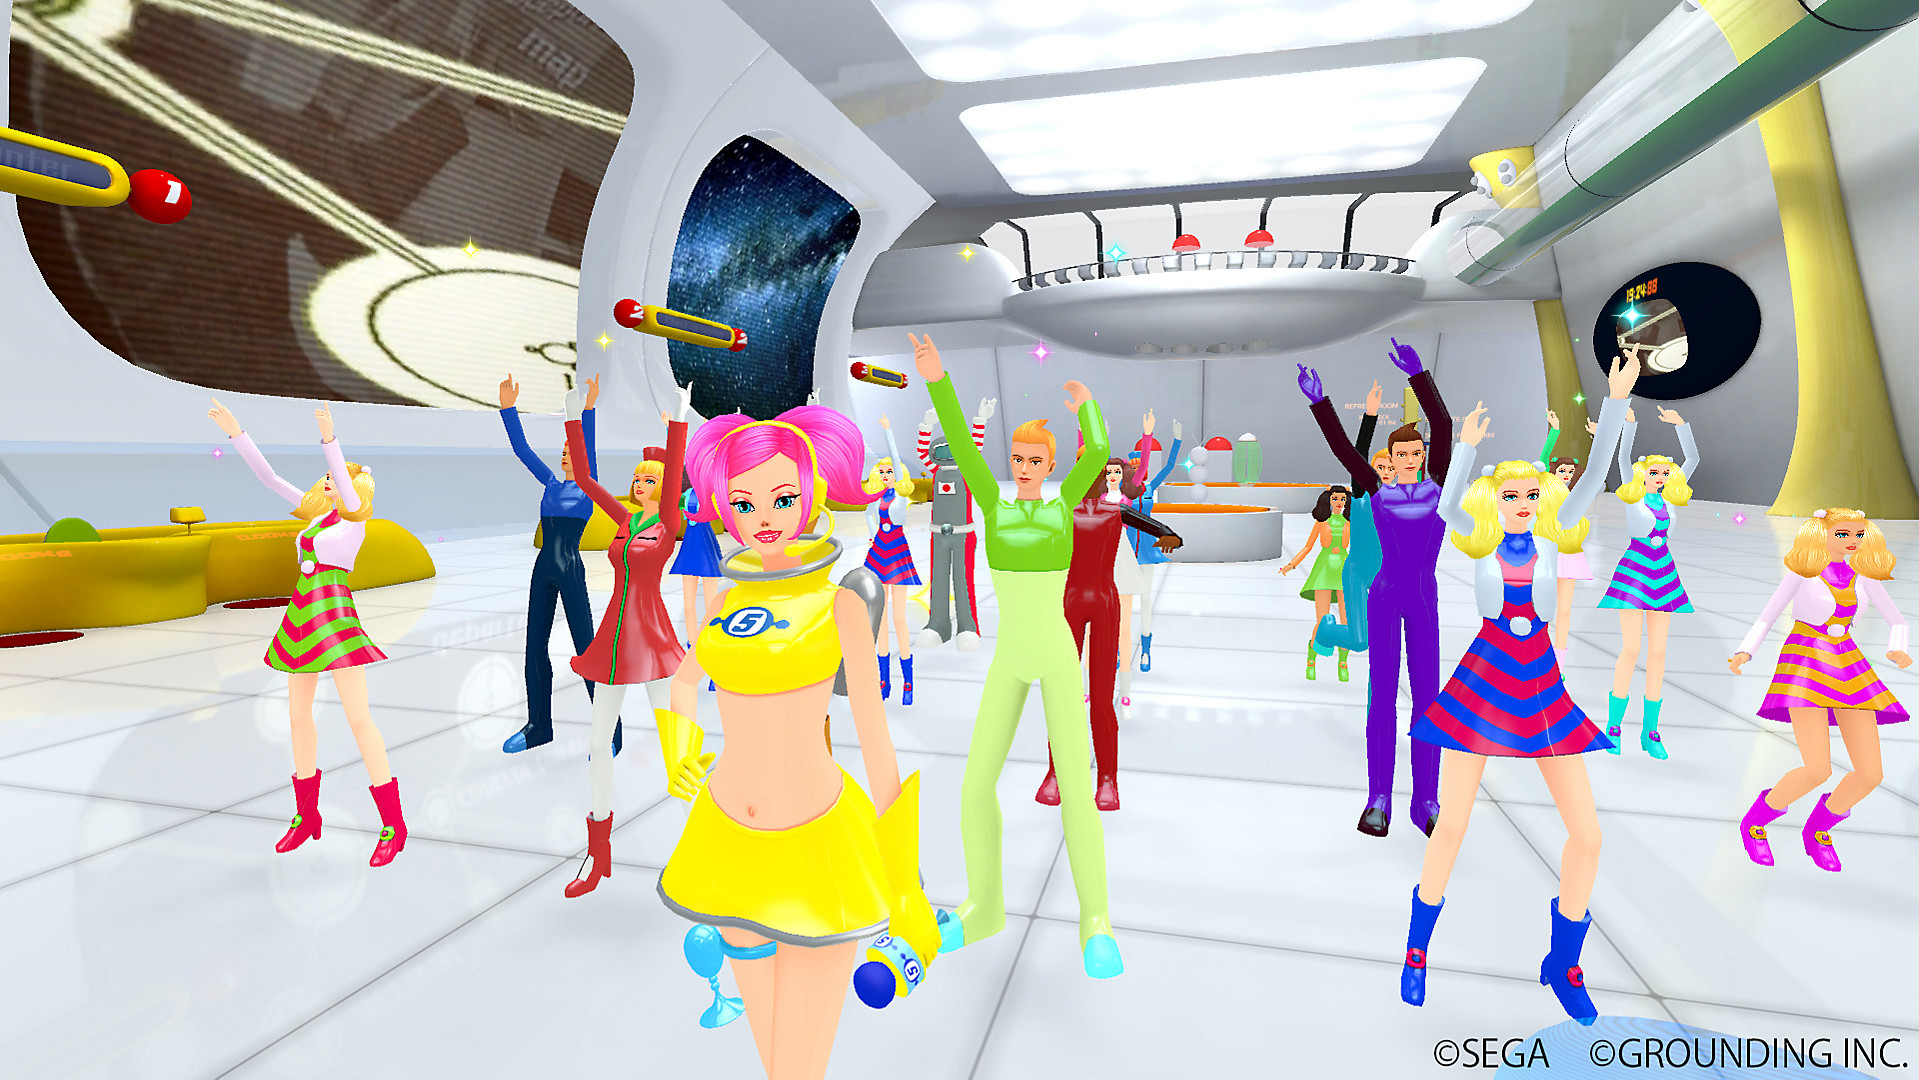 Space Channel 5 VR launches on February 25 on PlayStation 4